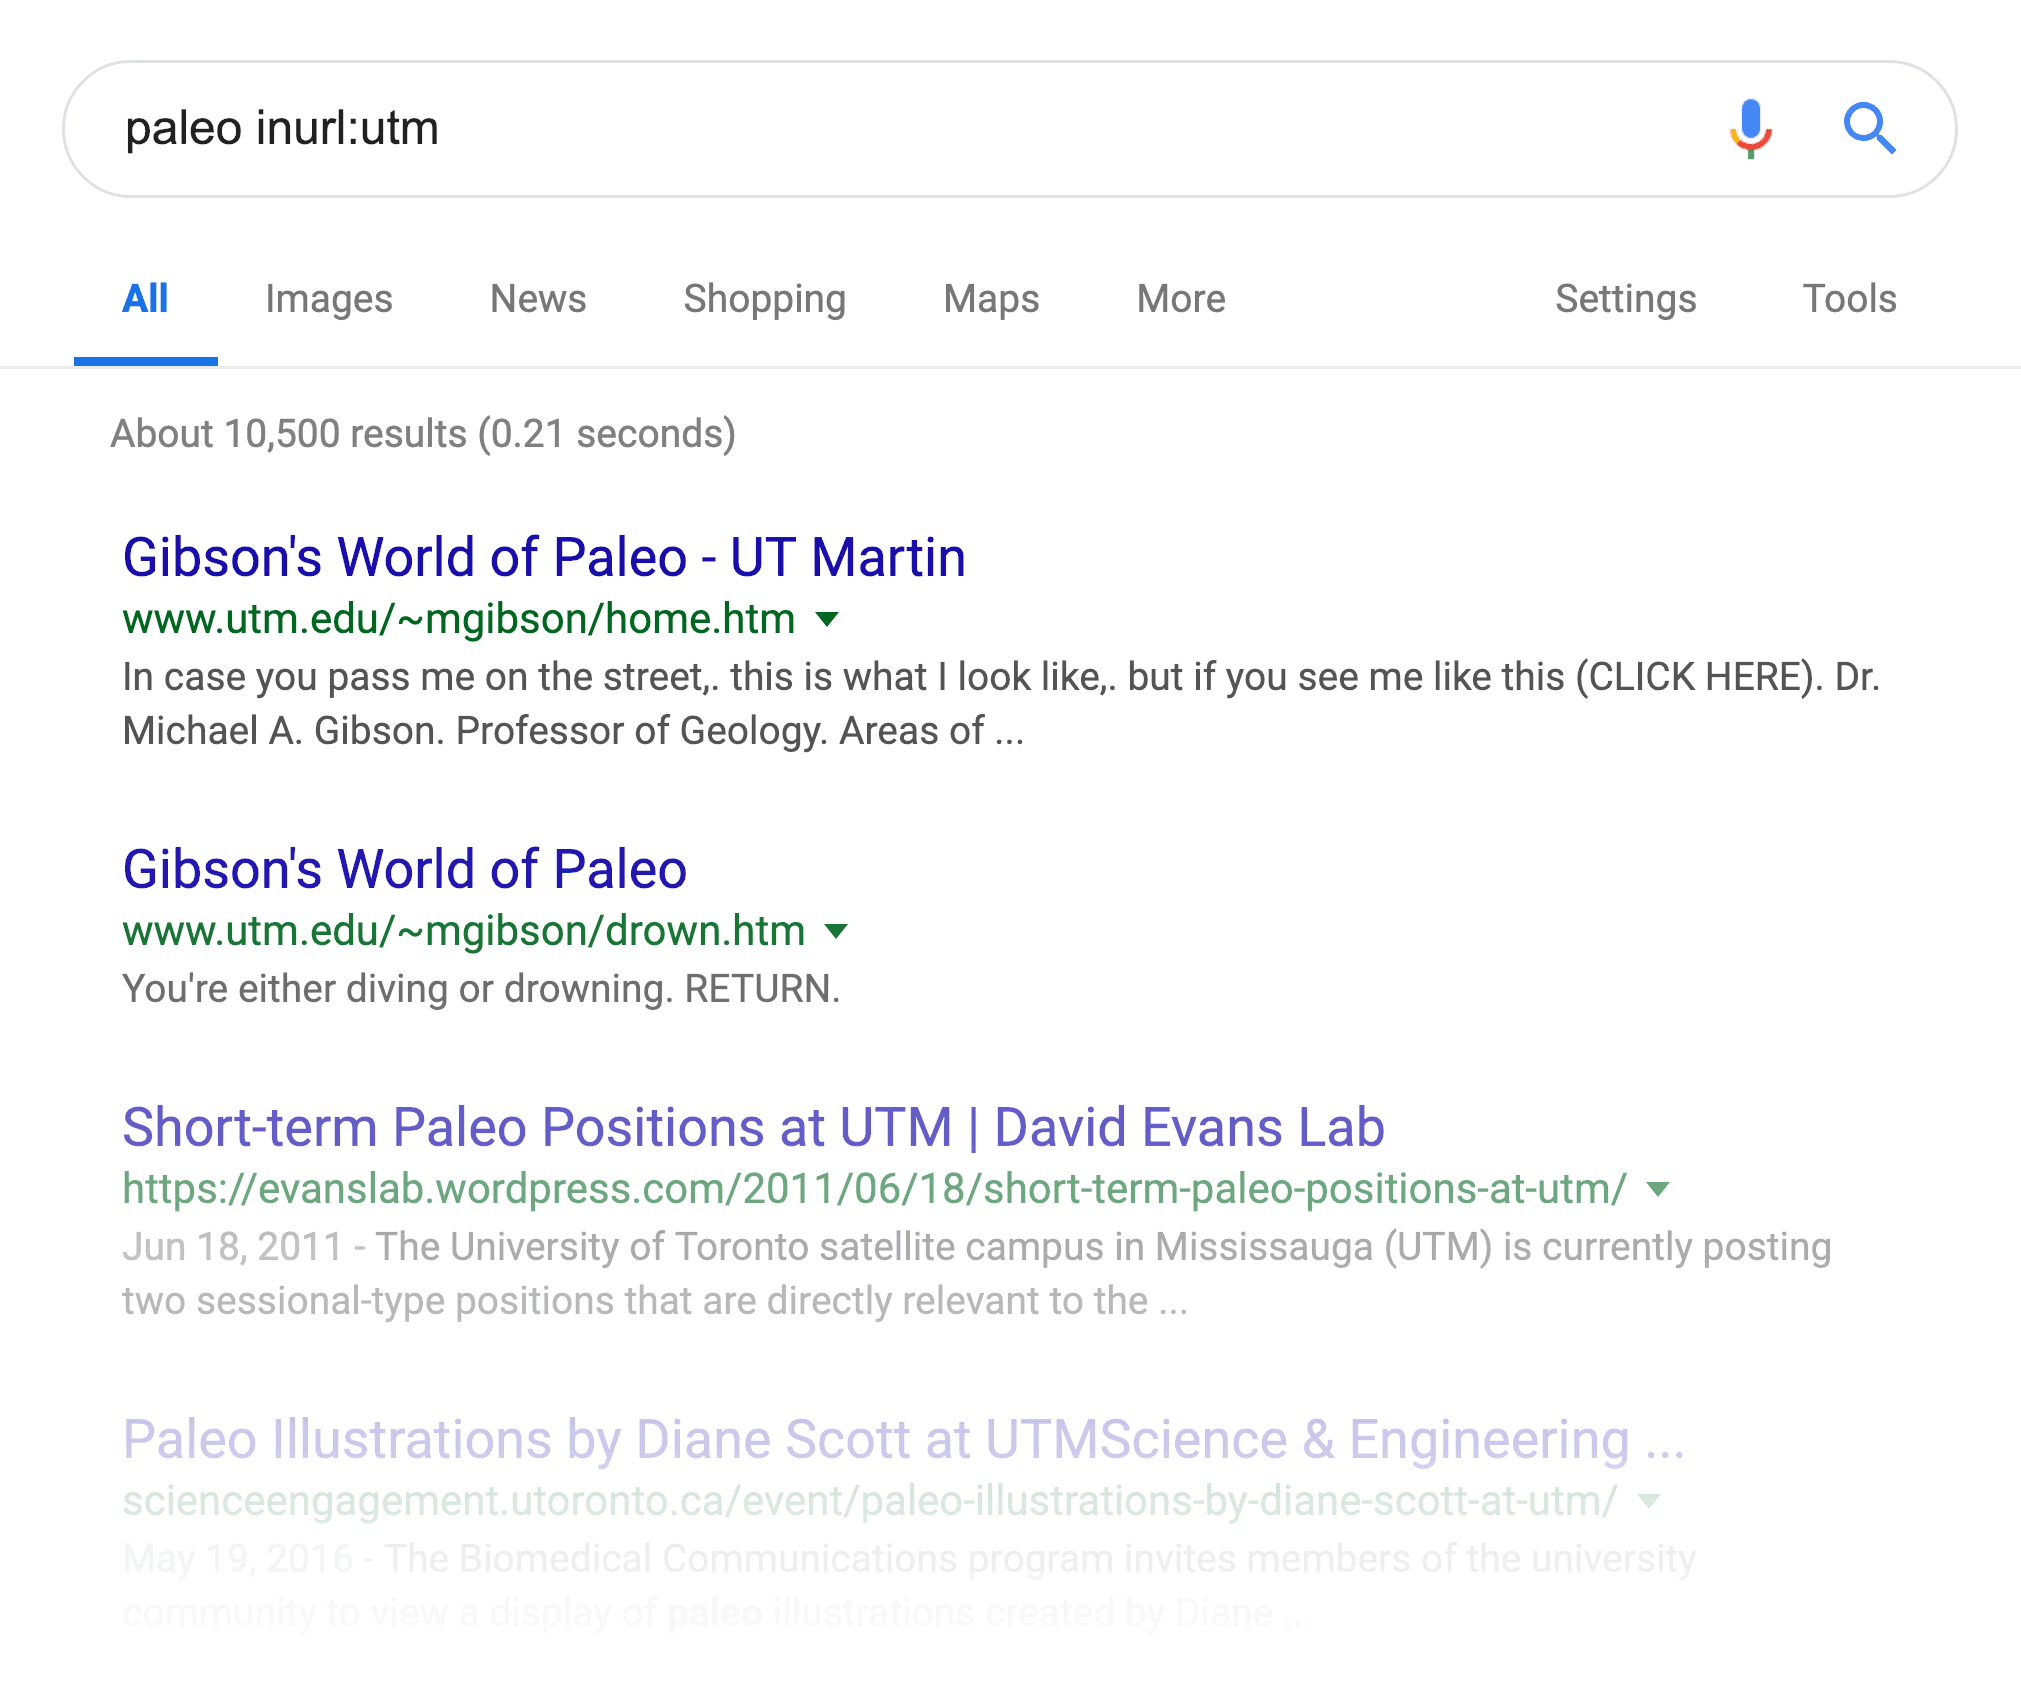 Dynamic URLs are long and get cut off in the search results